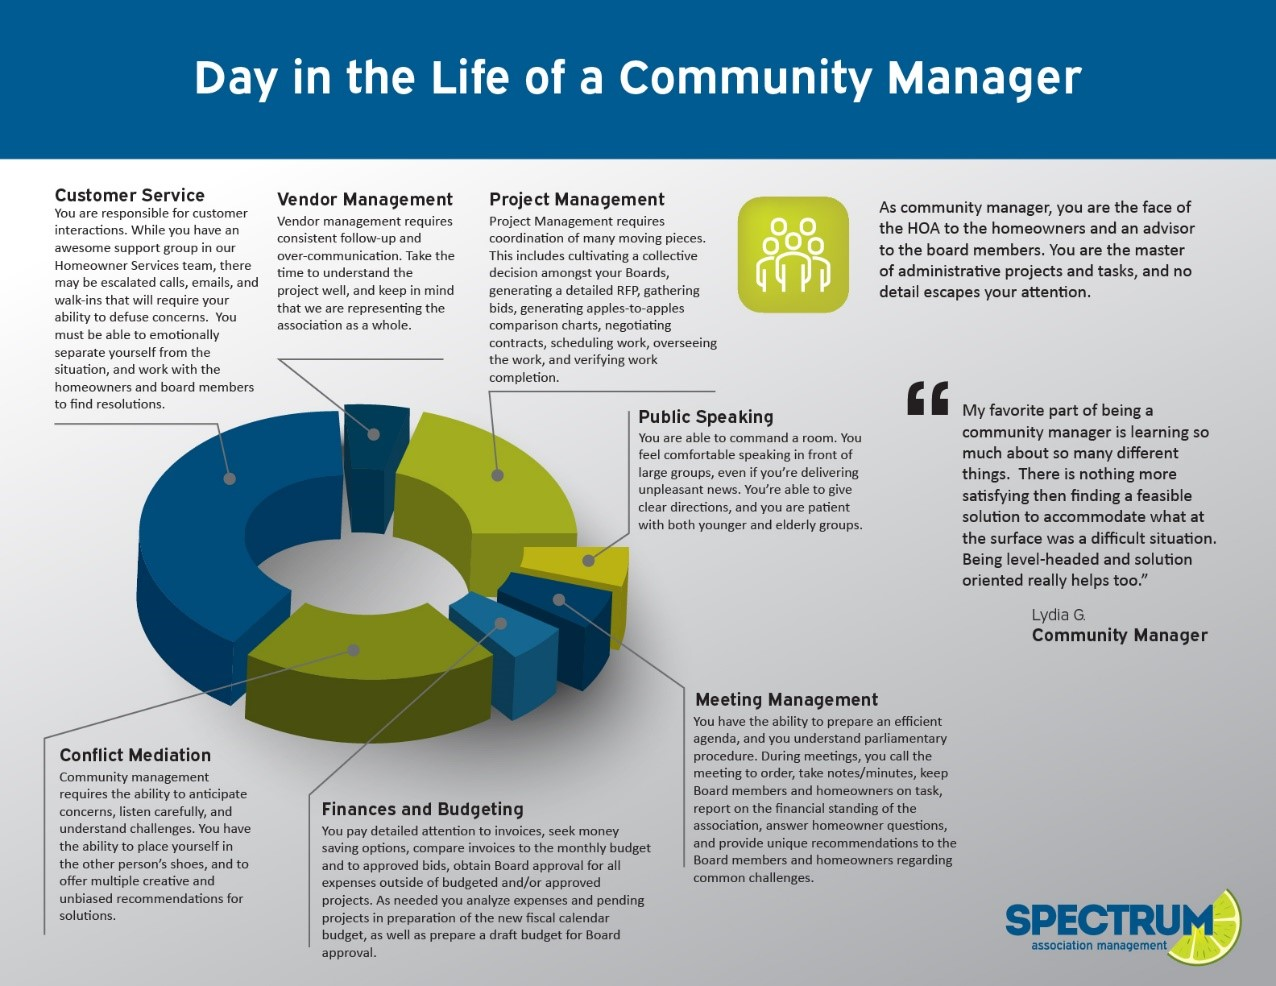 Day in the Life of a Community Manager